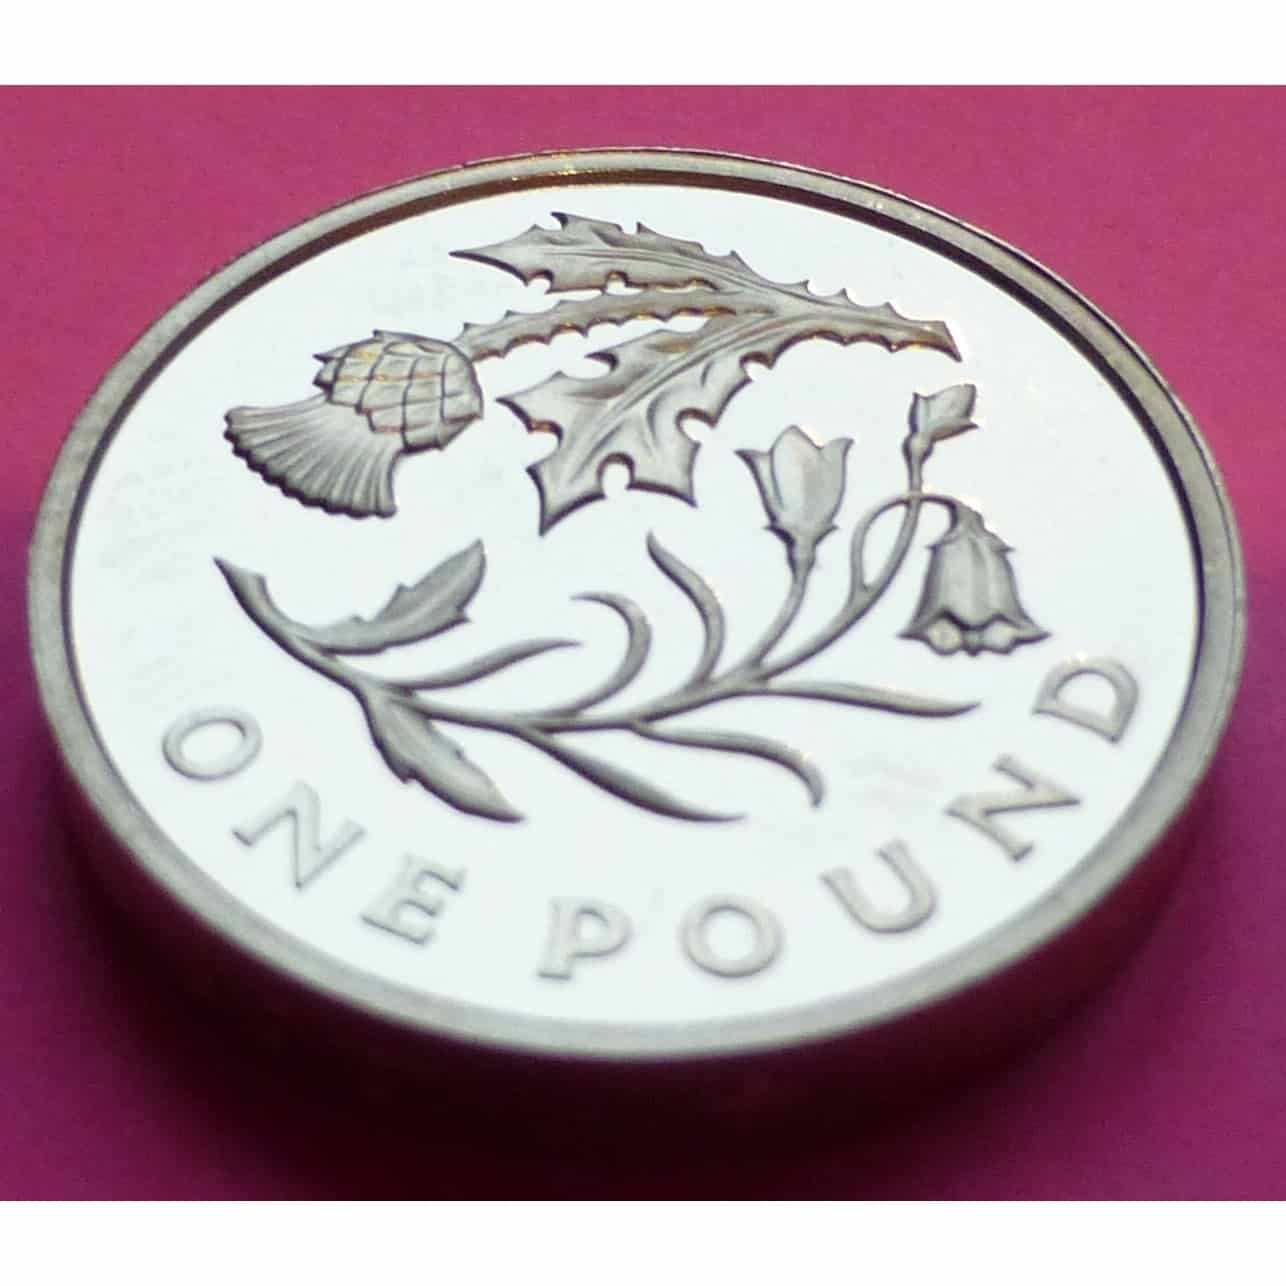 2014 Royal Floral Emblem Of Scotland 1 One Pound Proof Coin Mint